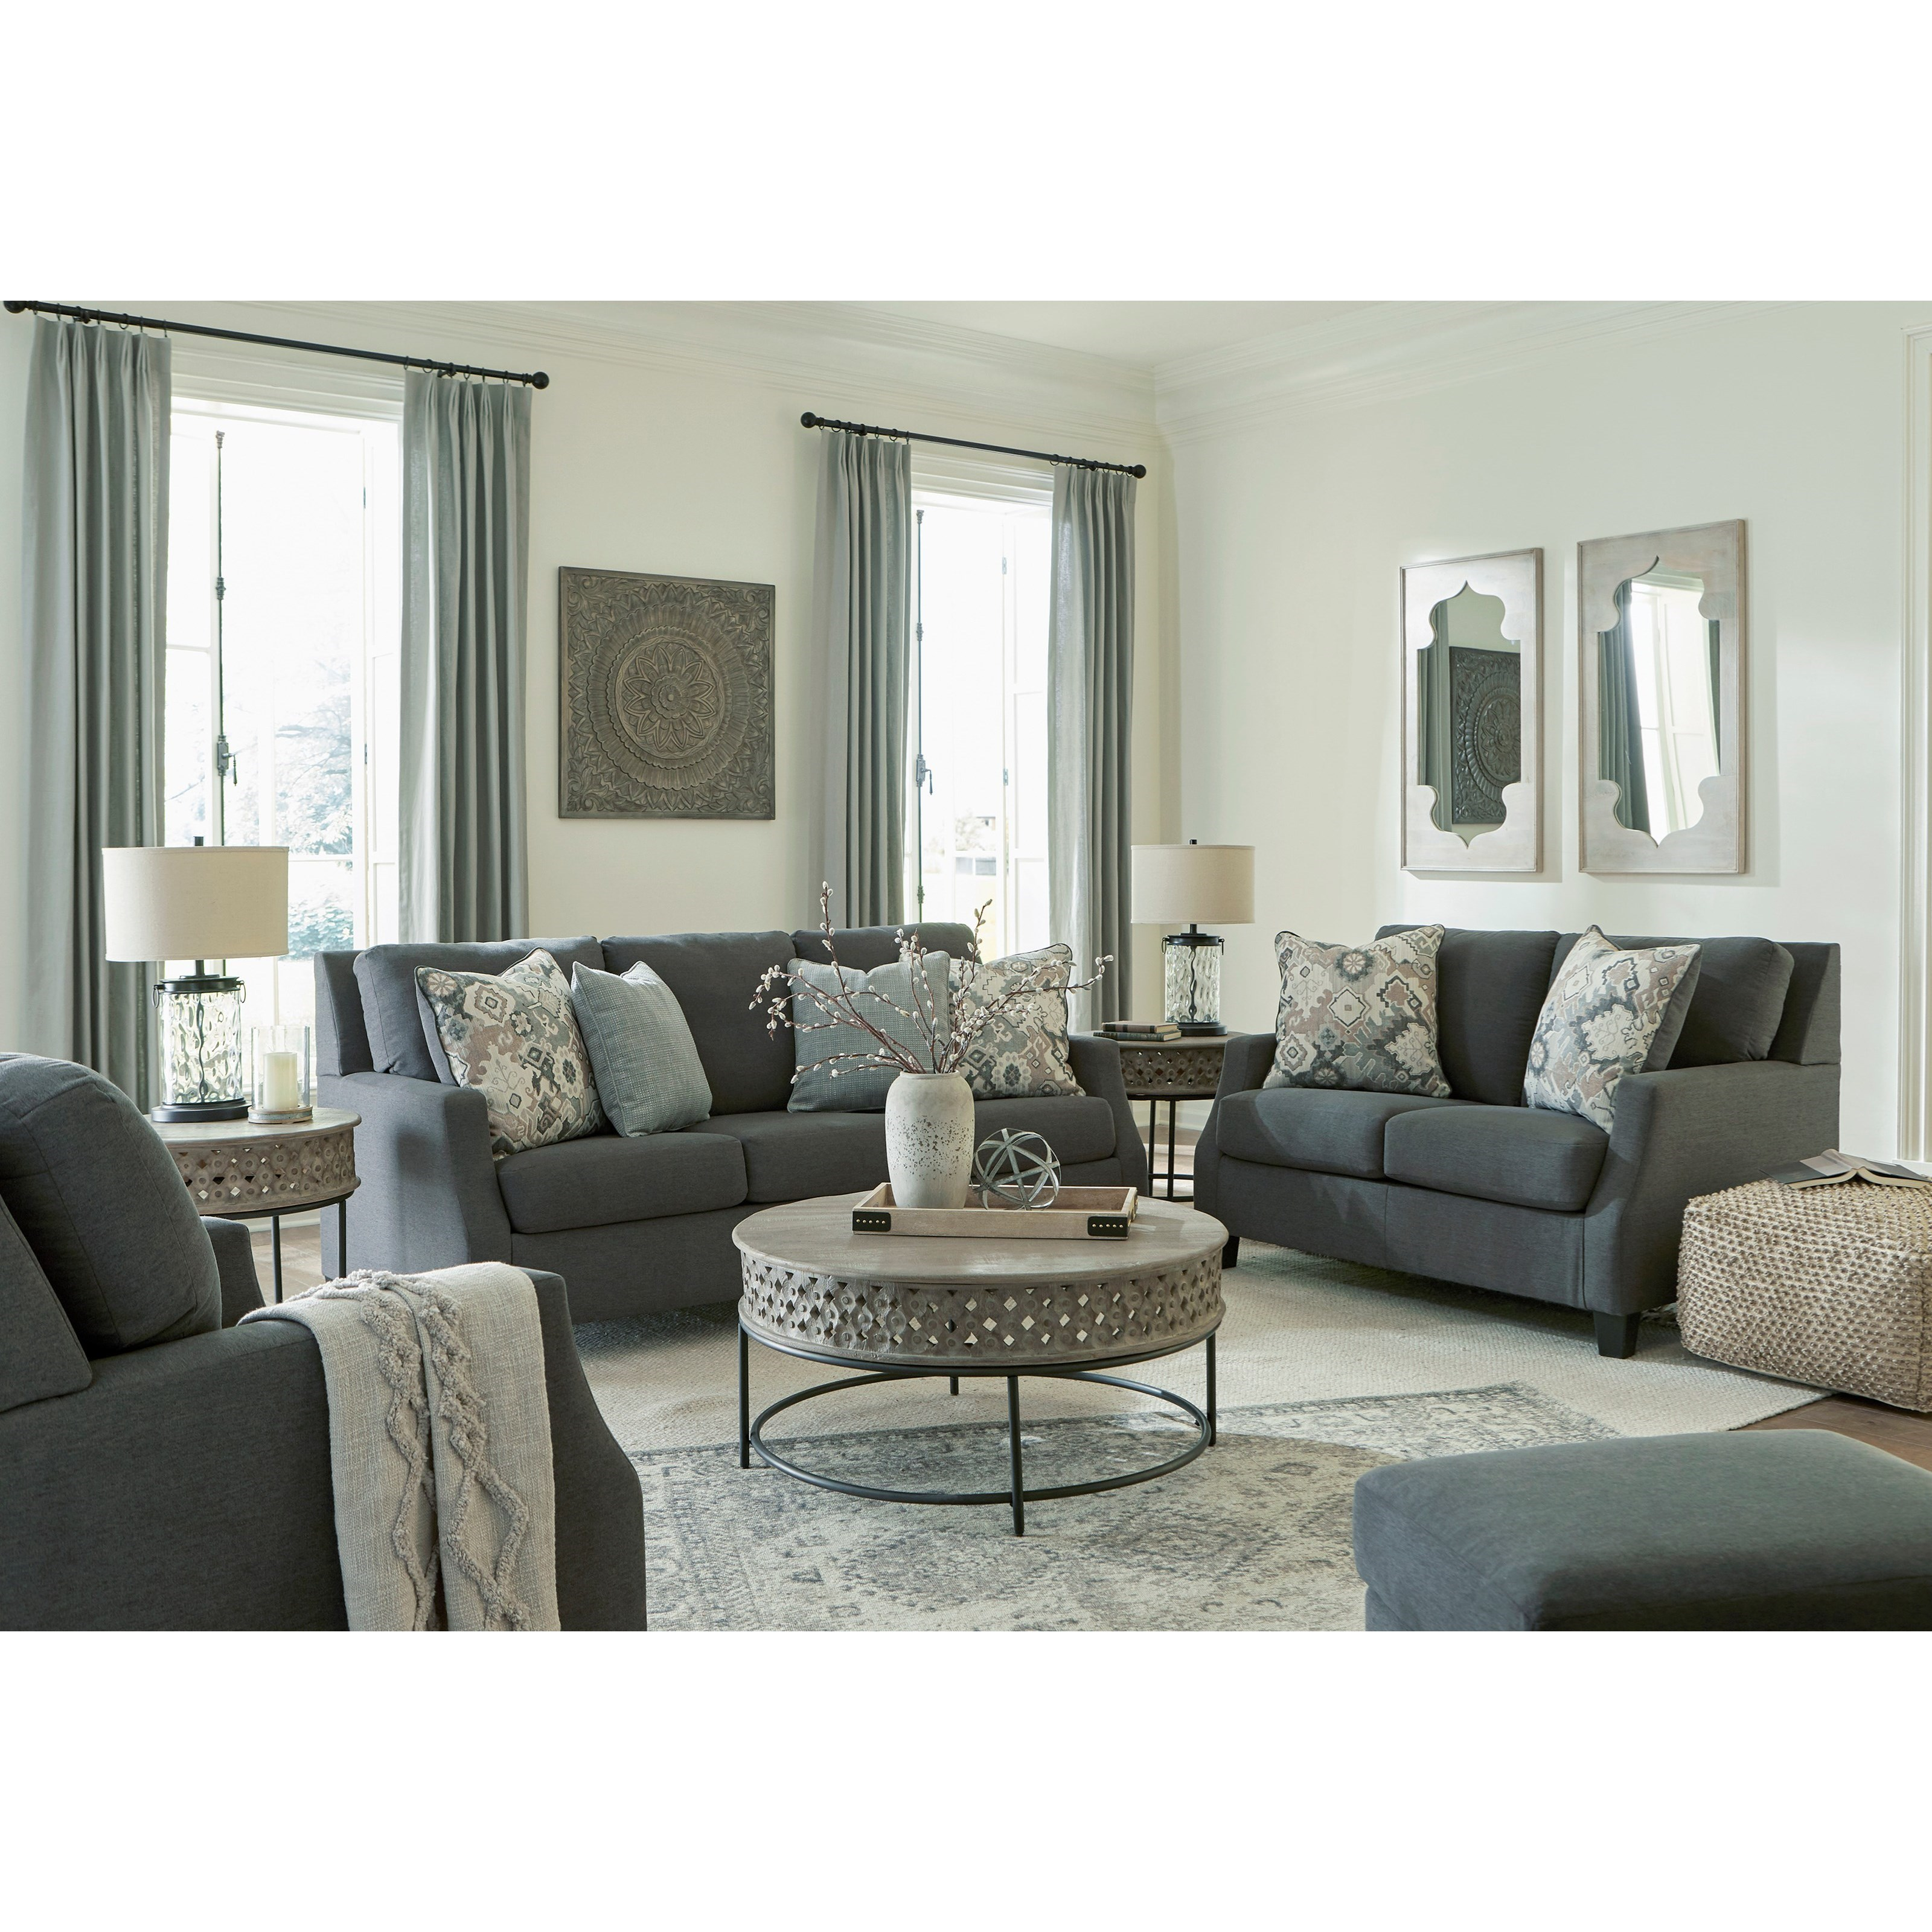 Bayonne Living Room Group by Signature Design by Ashley at Pilgrim Furniture City